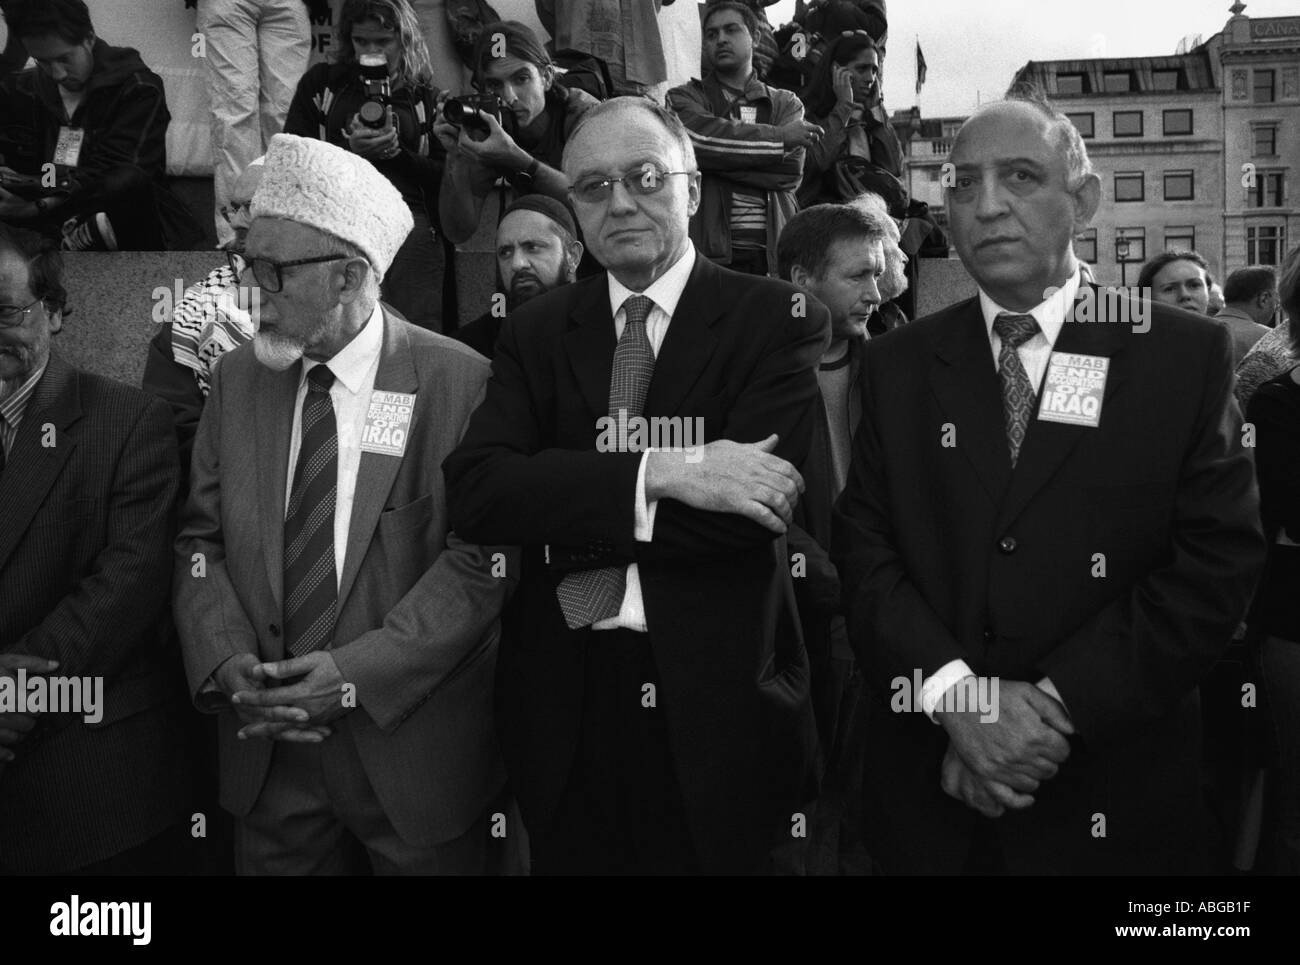 Mayor of London Ken Livingston with ethnic community lider s - Stock Image